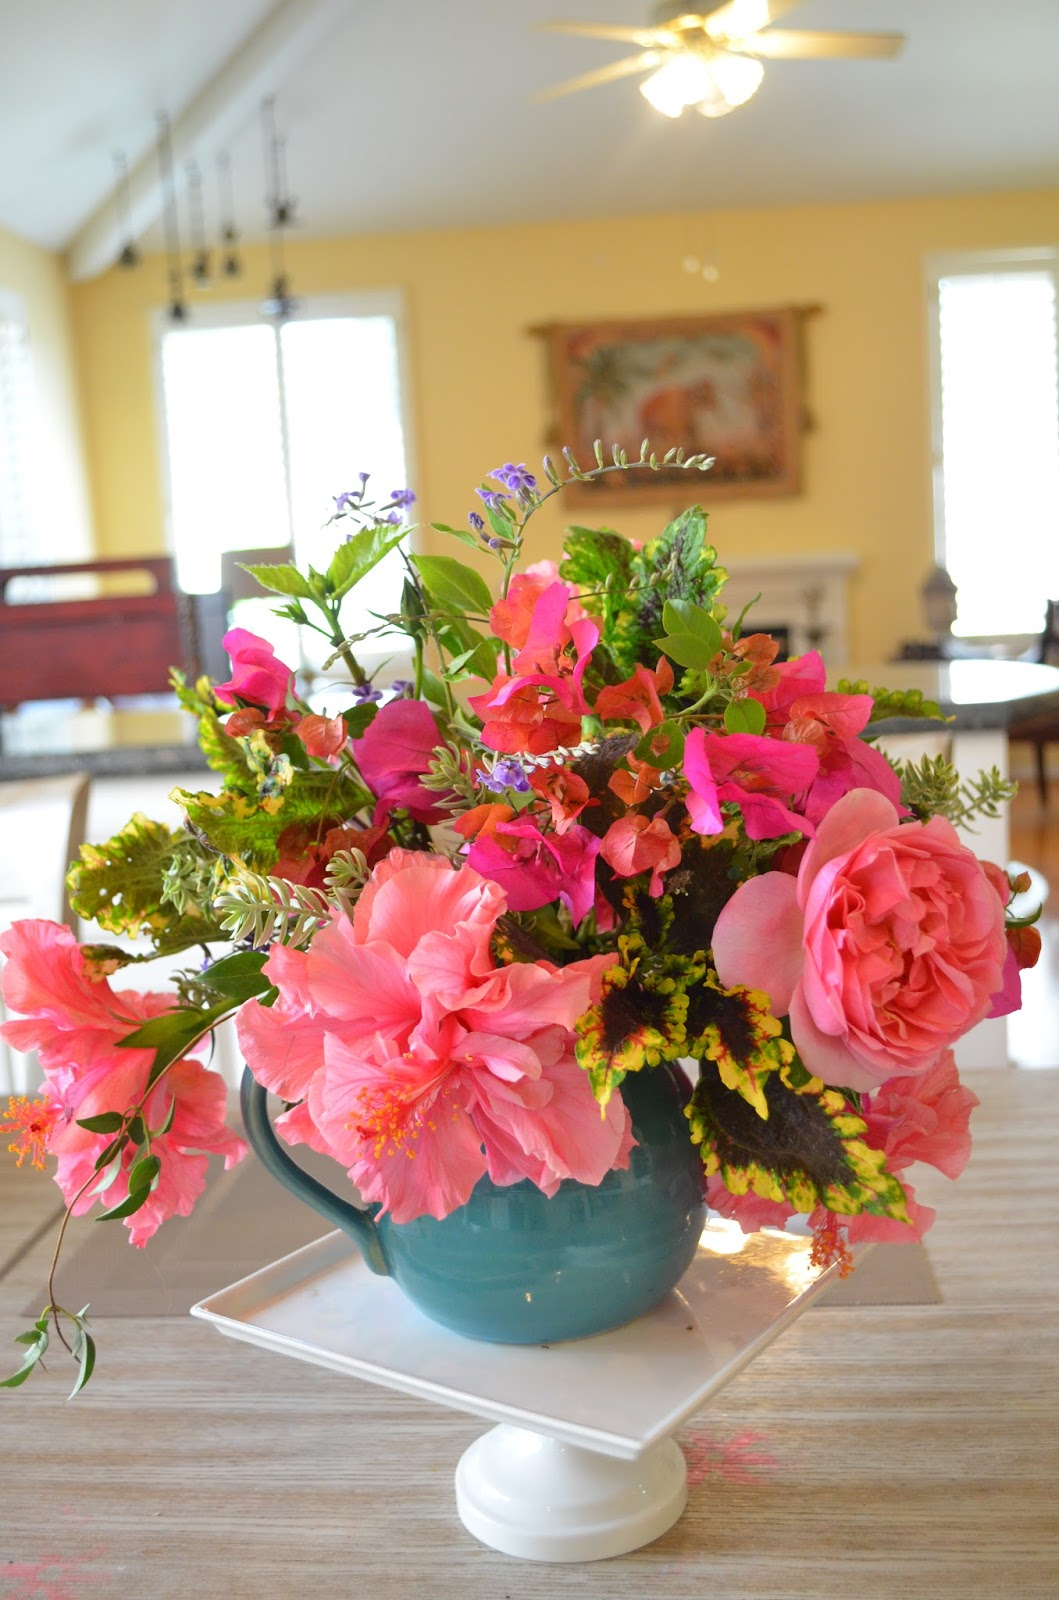 Entertaining From An Ethnic Indian Kitchen Flower Arranging With